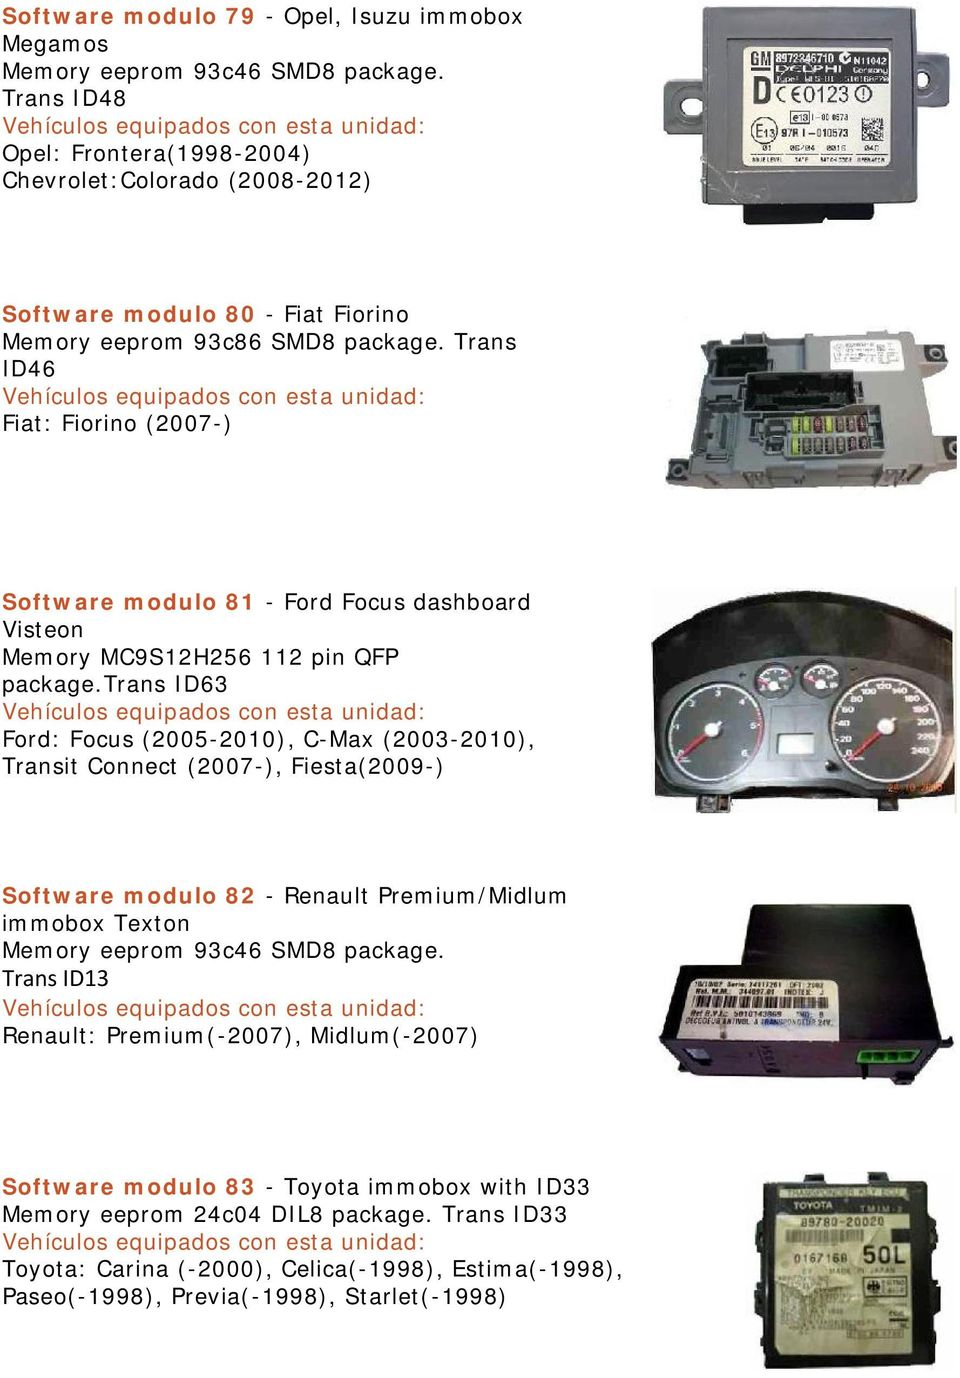 Trans ID46 Fiat: Fiorino (2007-) Software modulo 81 - Ford Focus dashboard Visteon Memory MC9S12H256 112 pin QFP package.